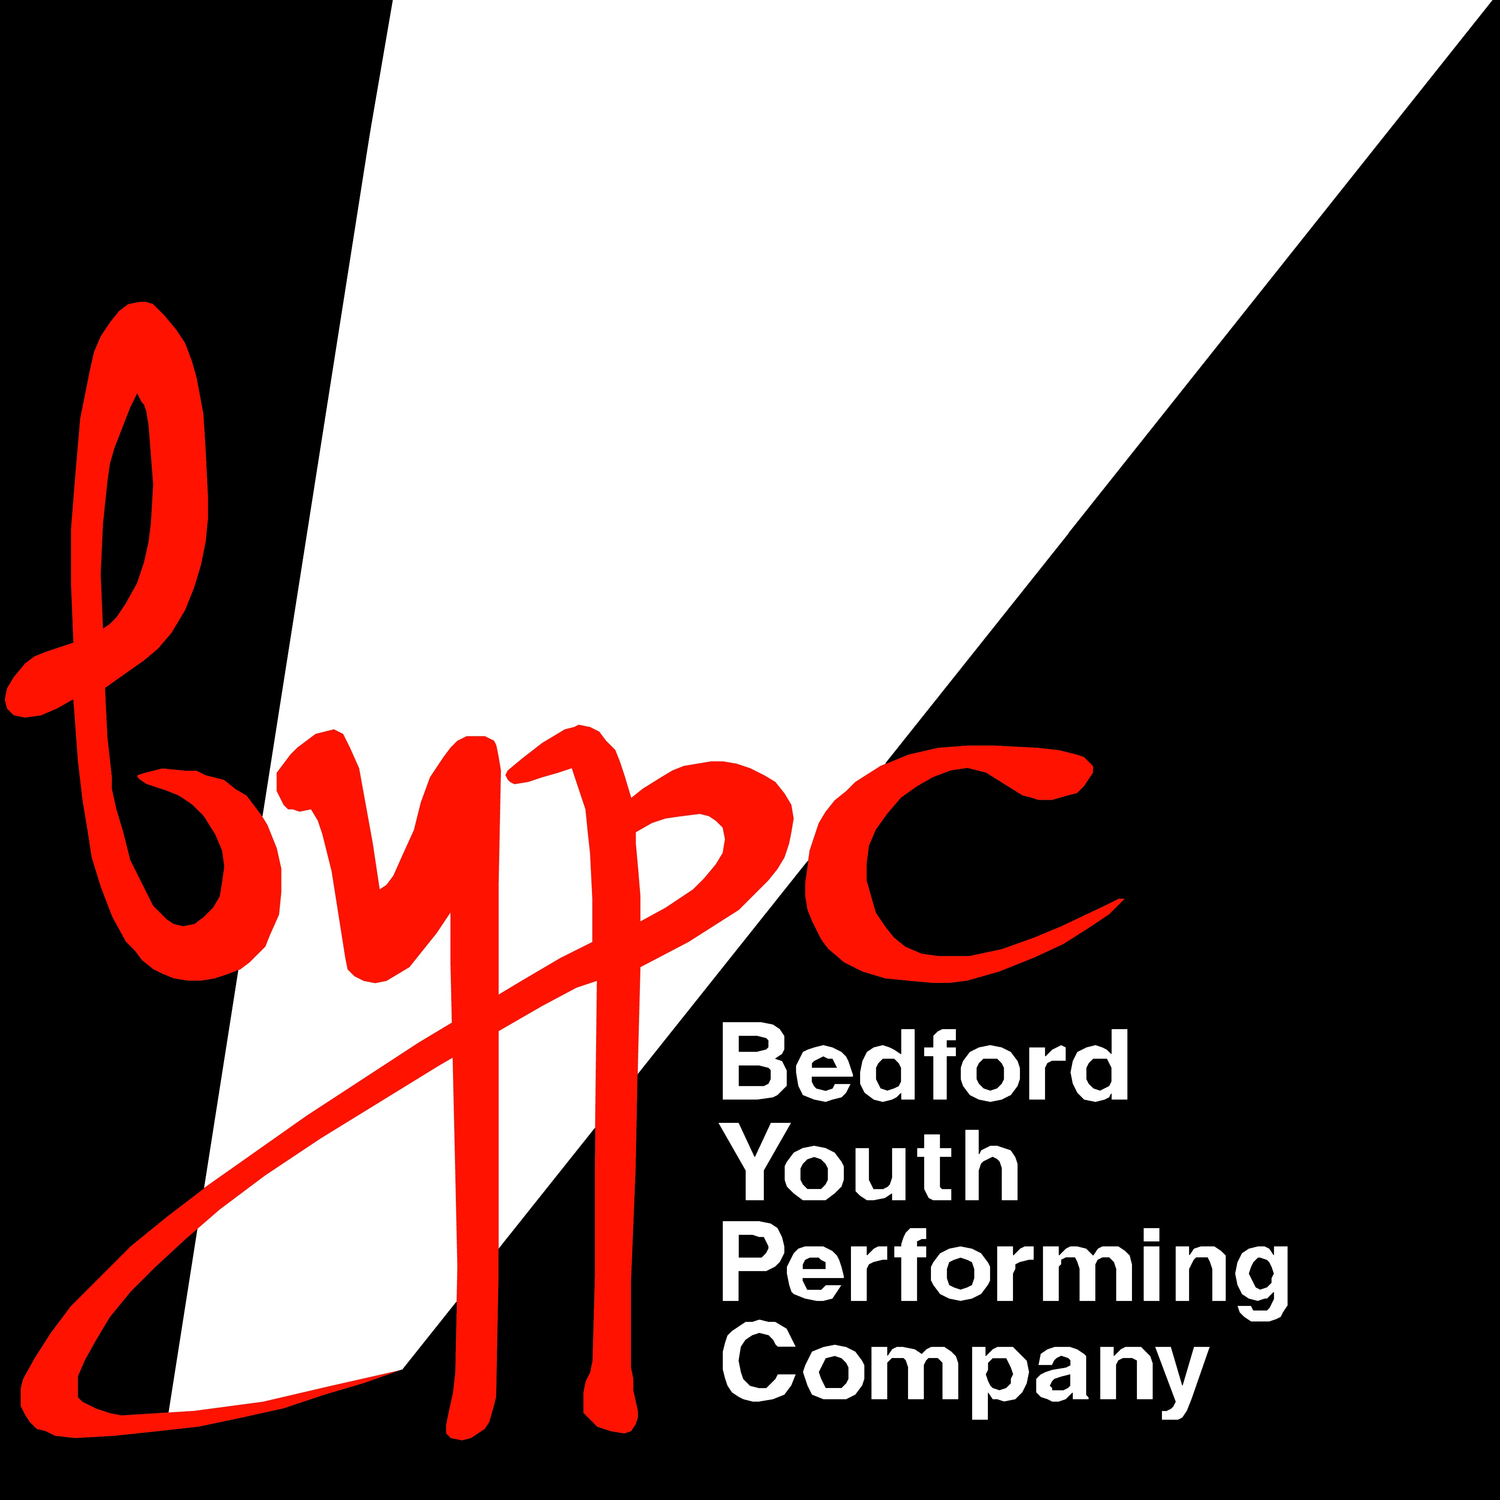 BYPC